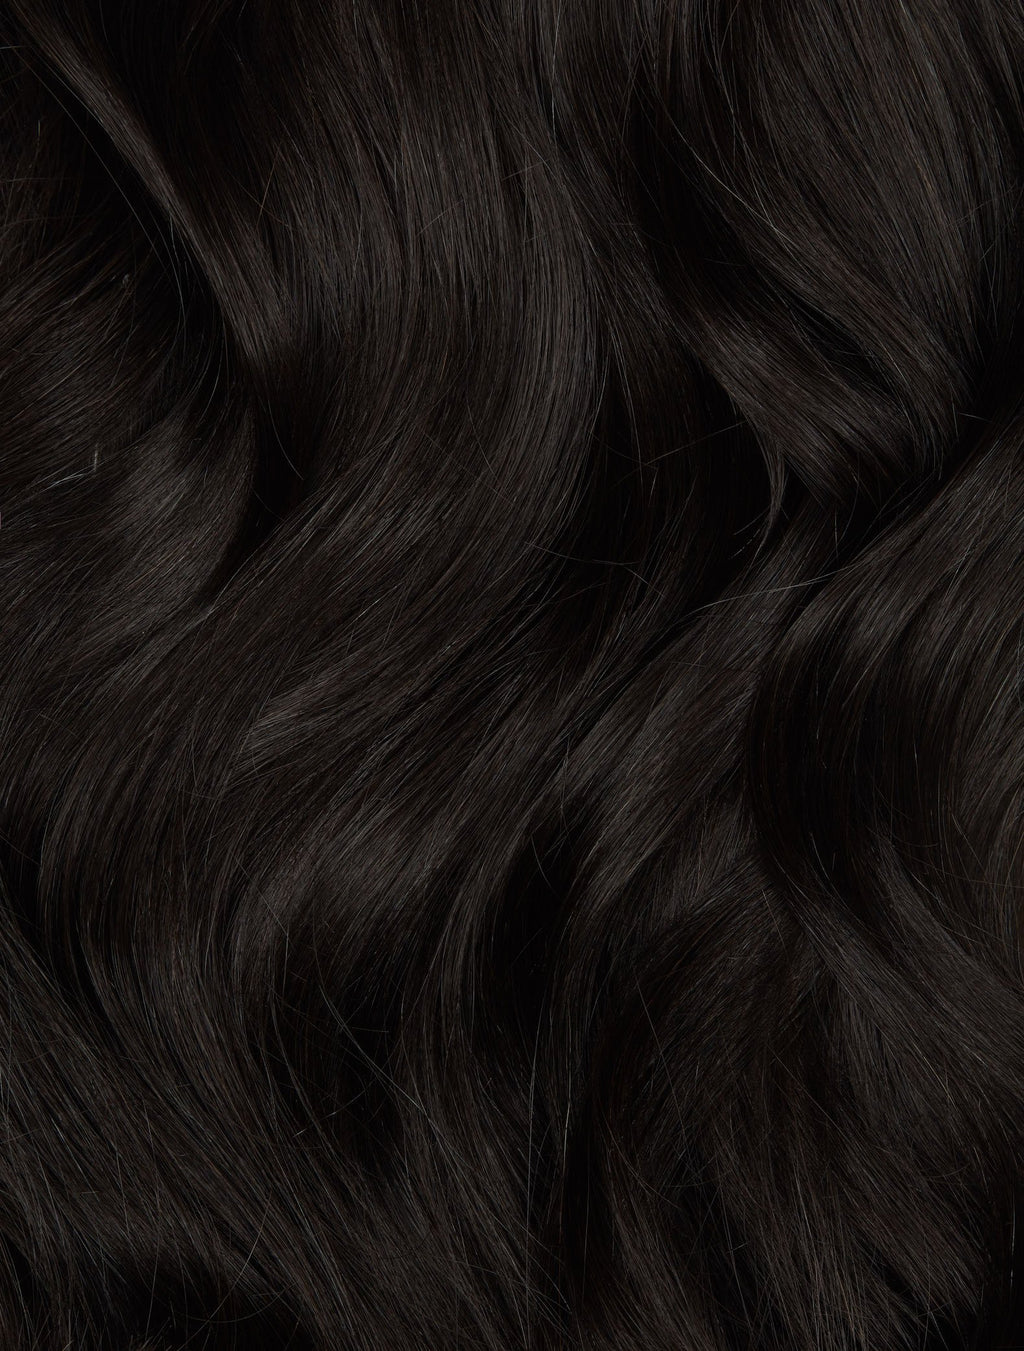 "Off Black (1B) 18"" 125g- ON BACKORDER (Ships July 14) - BOMBAY HAIR  - Bombay Baby 18"" 125g"